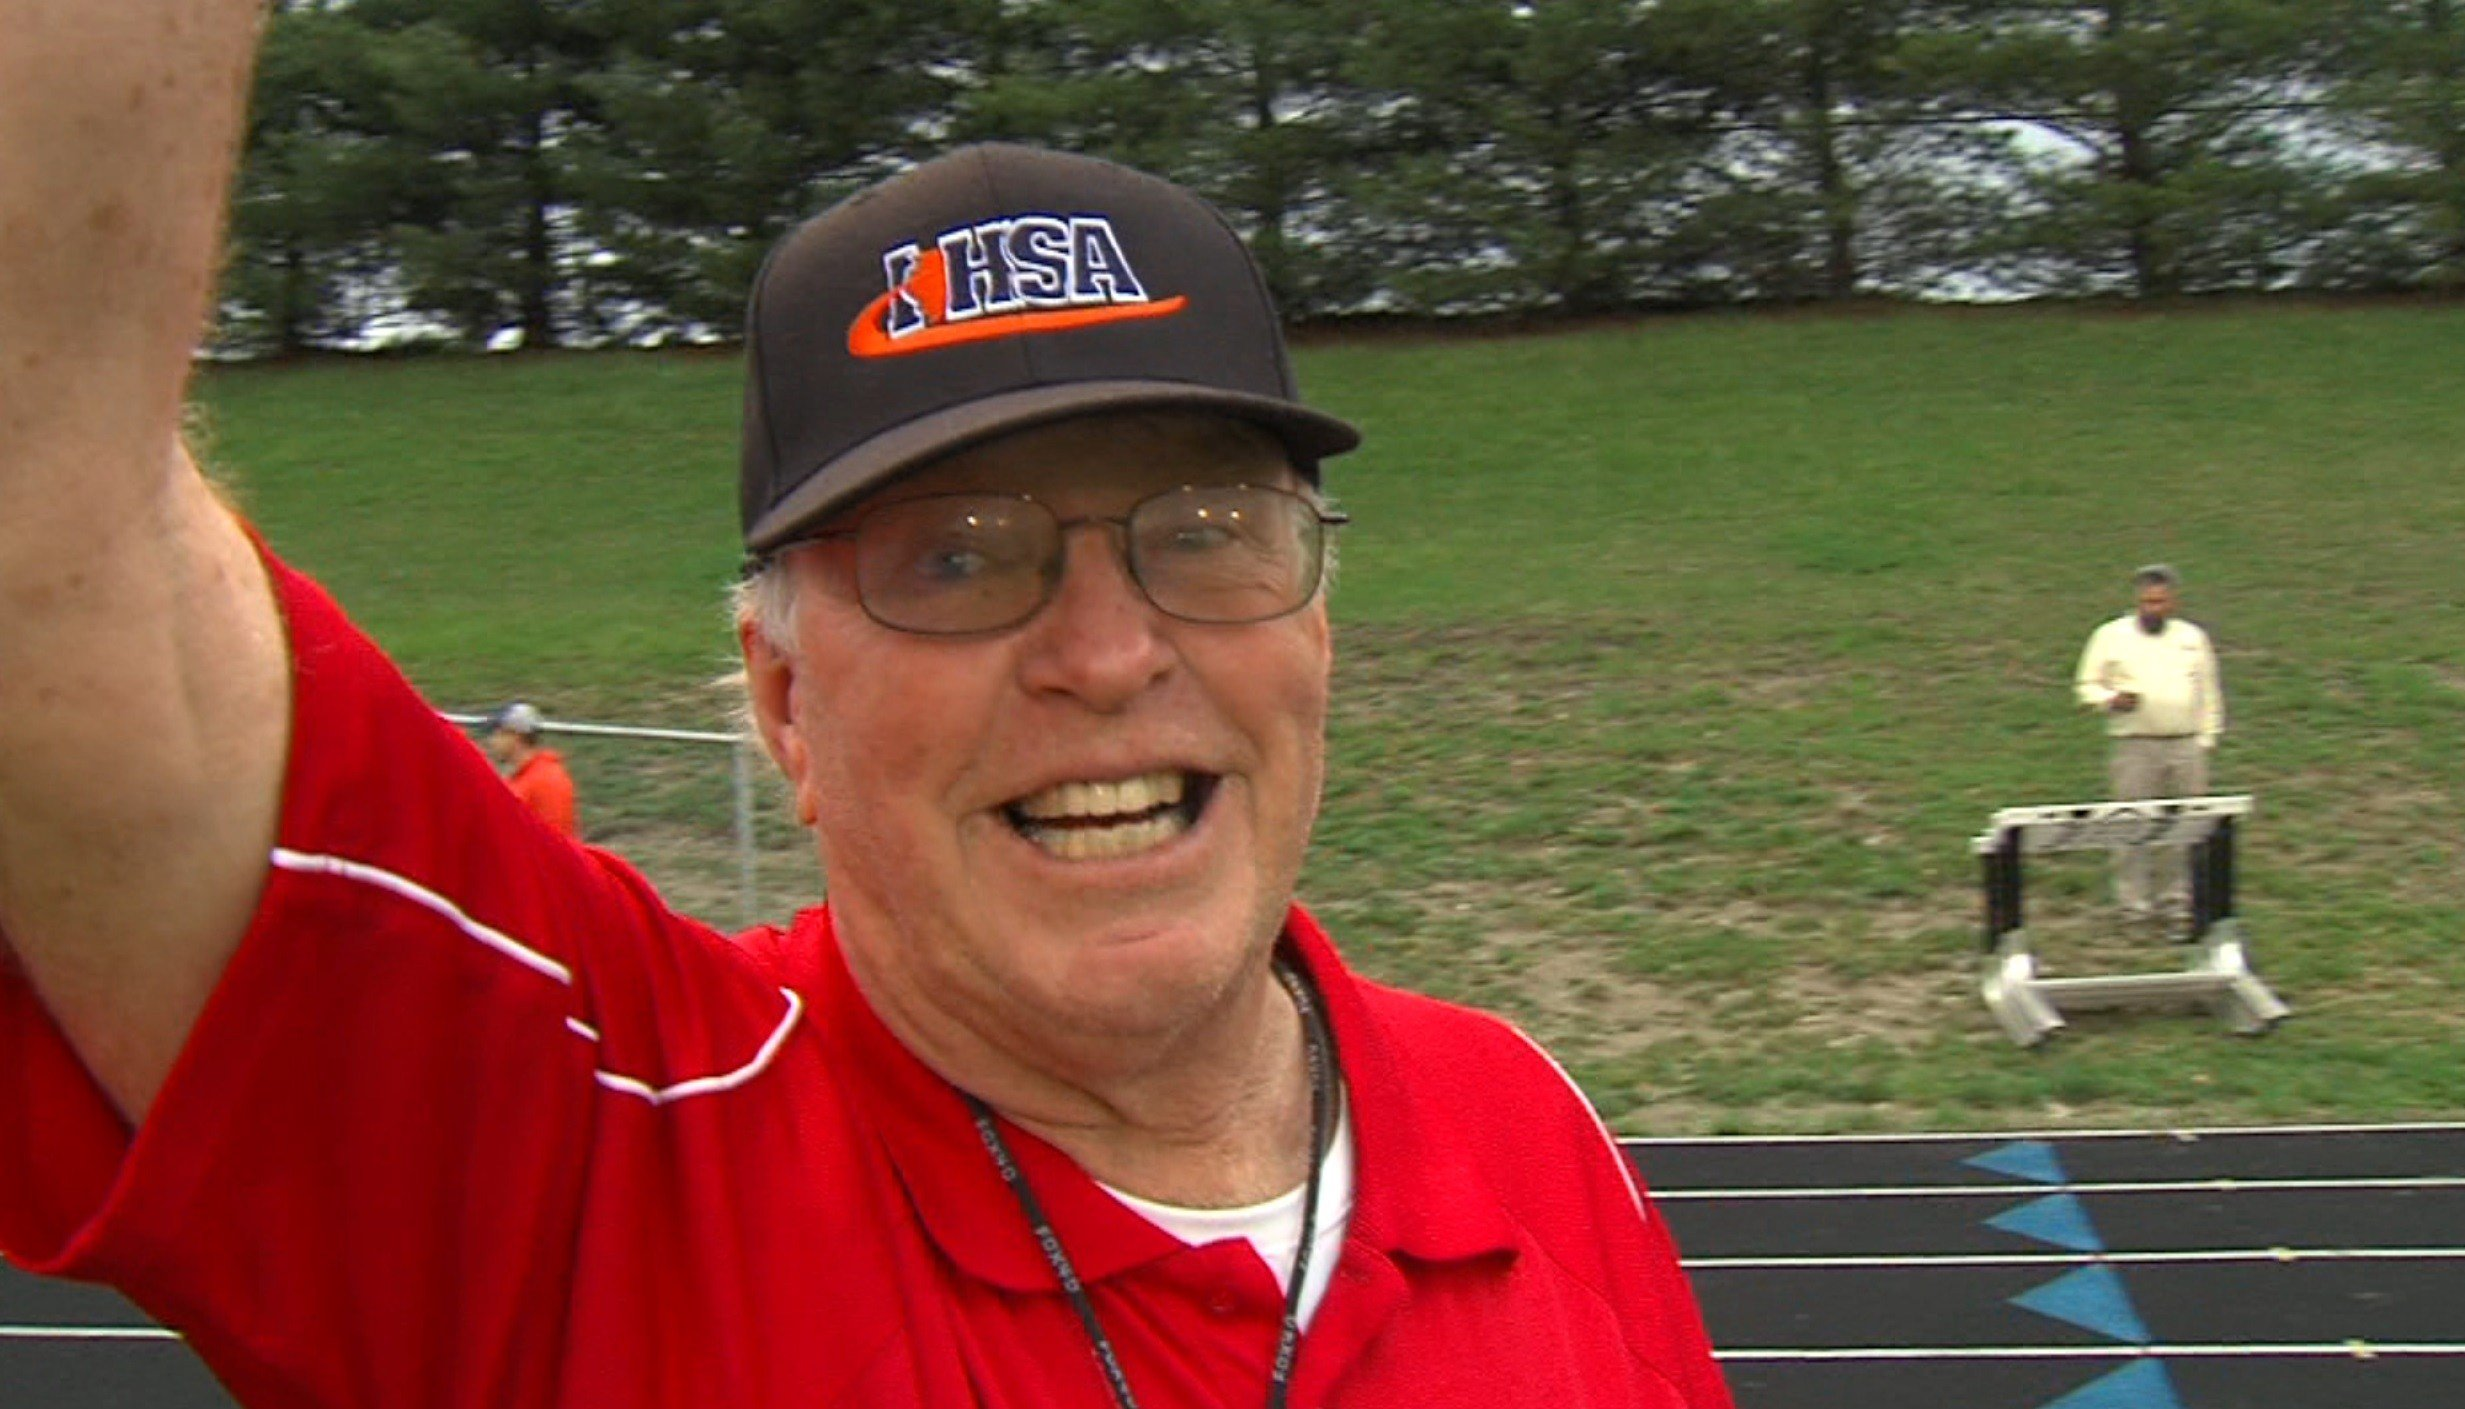 Effingham native Dave Feldhake has been giving his time to youth sports for 45 years.